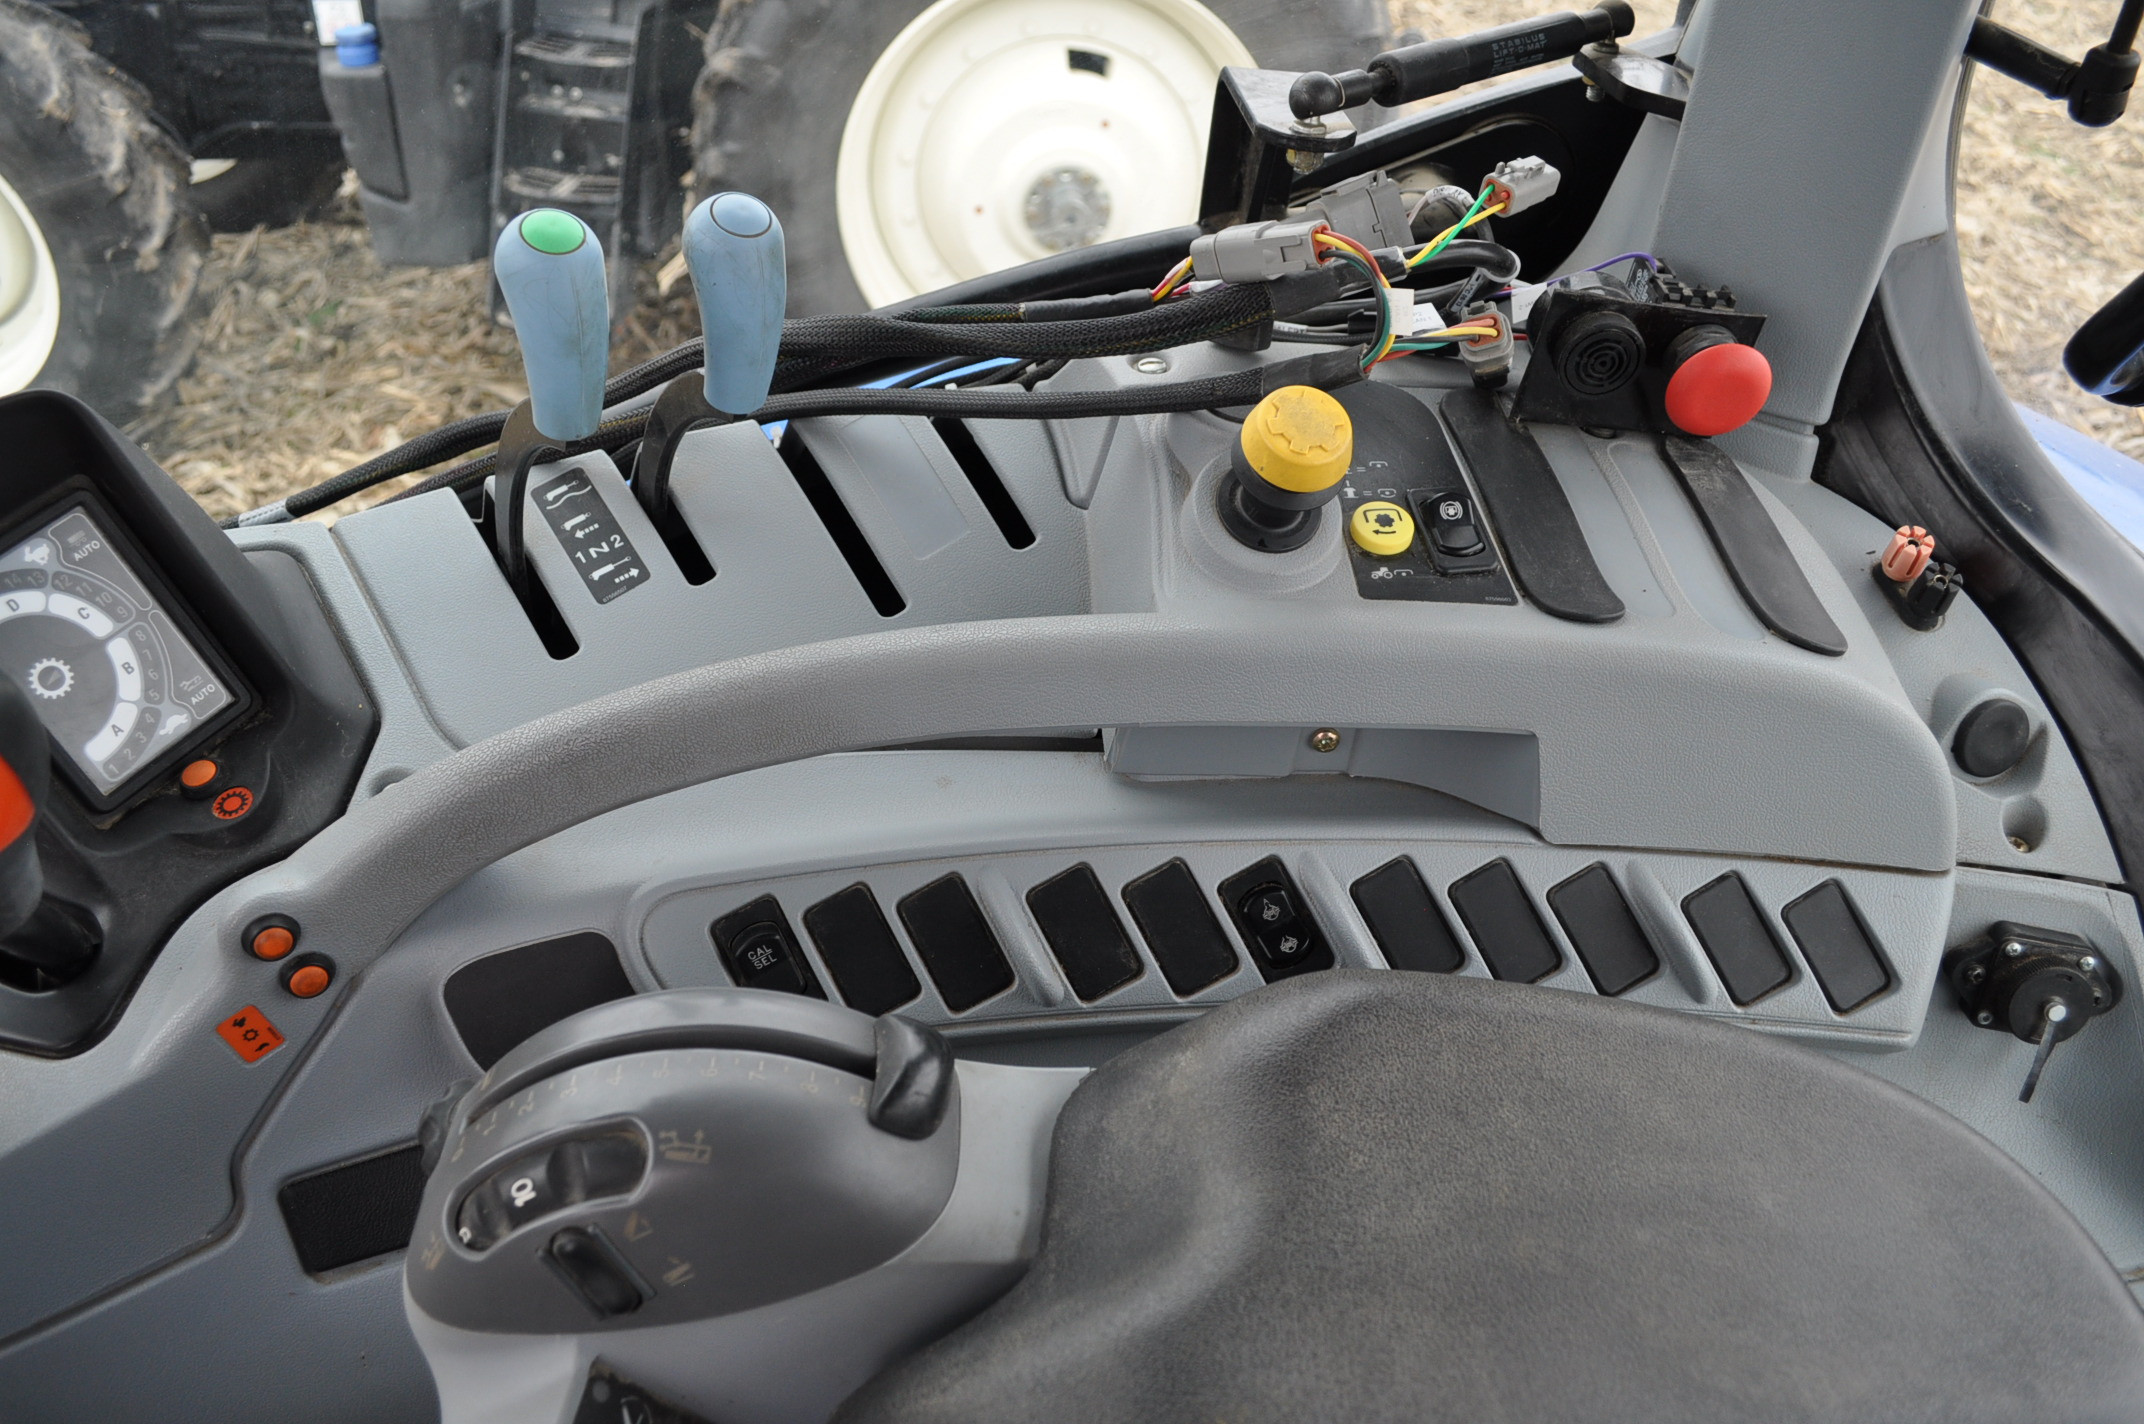 New Holland T6030 tractor, CHA, 16.9 R 38 tires, 11.00-16 front, 6 front wts, 3 hyd remotes, 3 pt, - Image 16 of 21